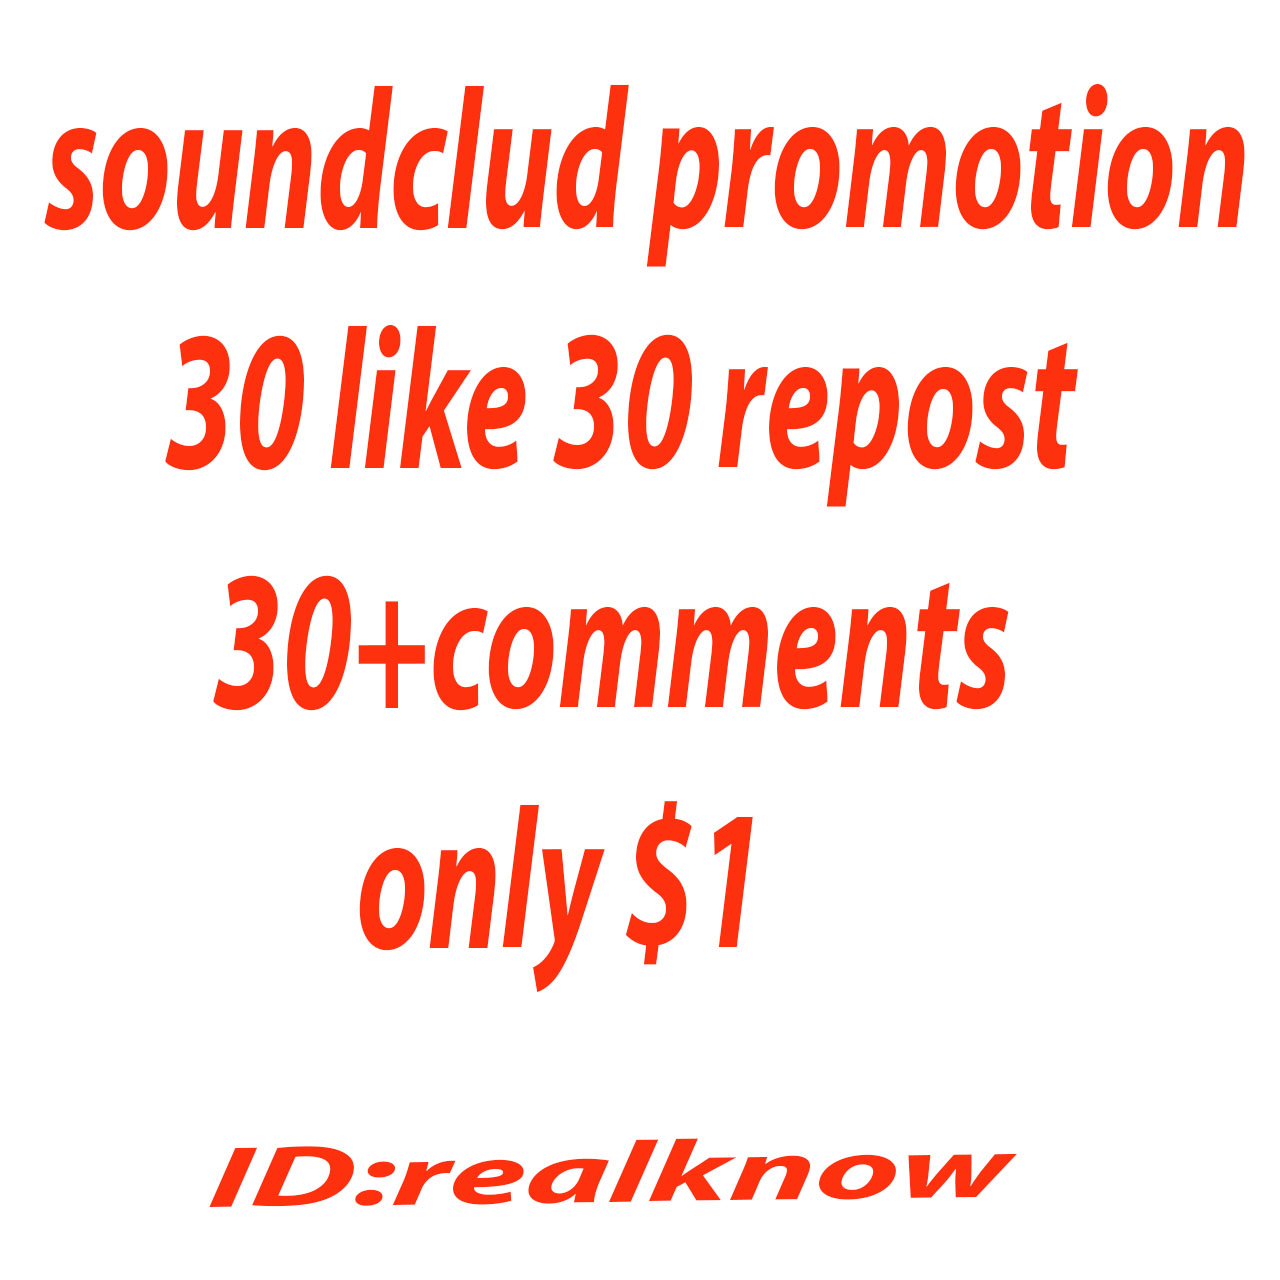 will SoundCloud promotion 30 like + 30 comments + 30 repost